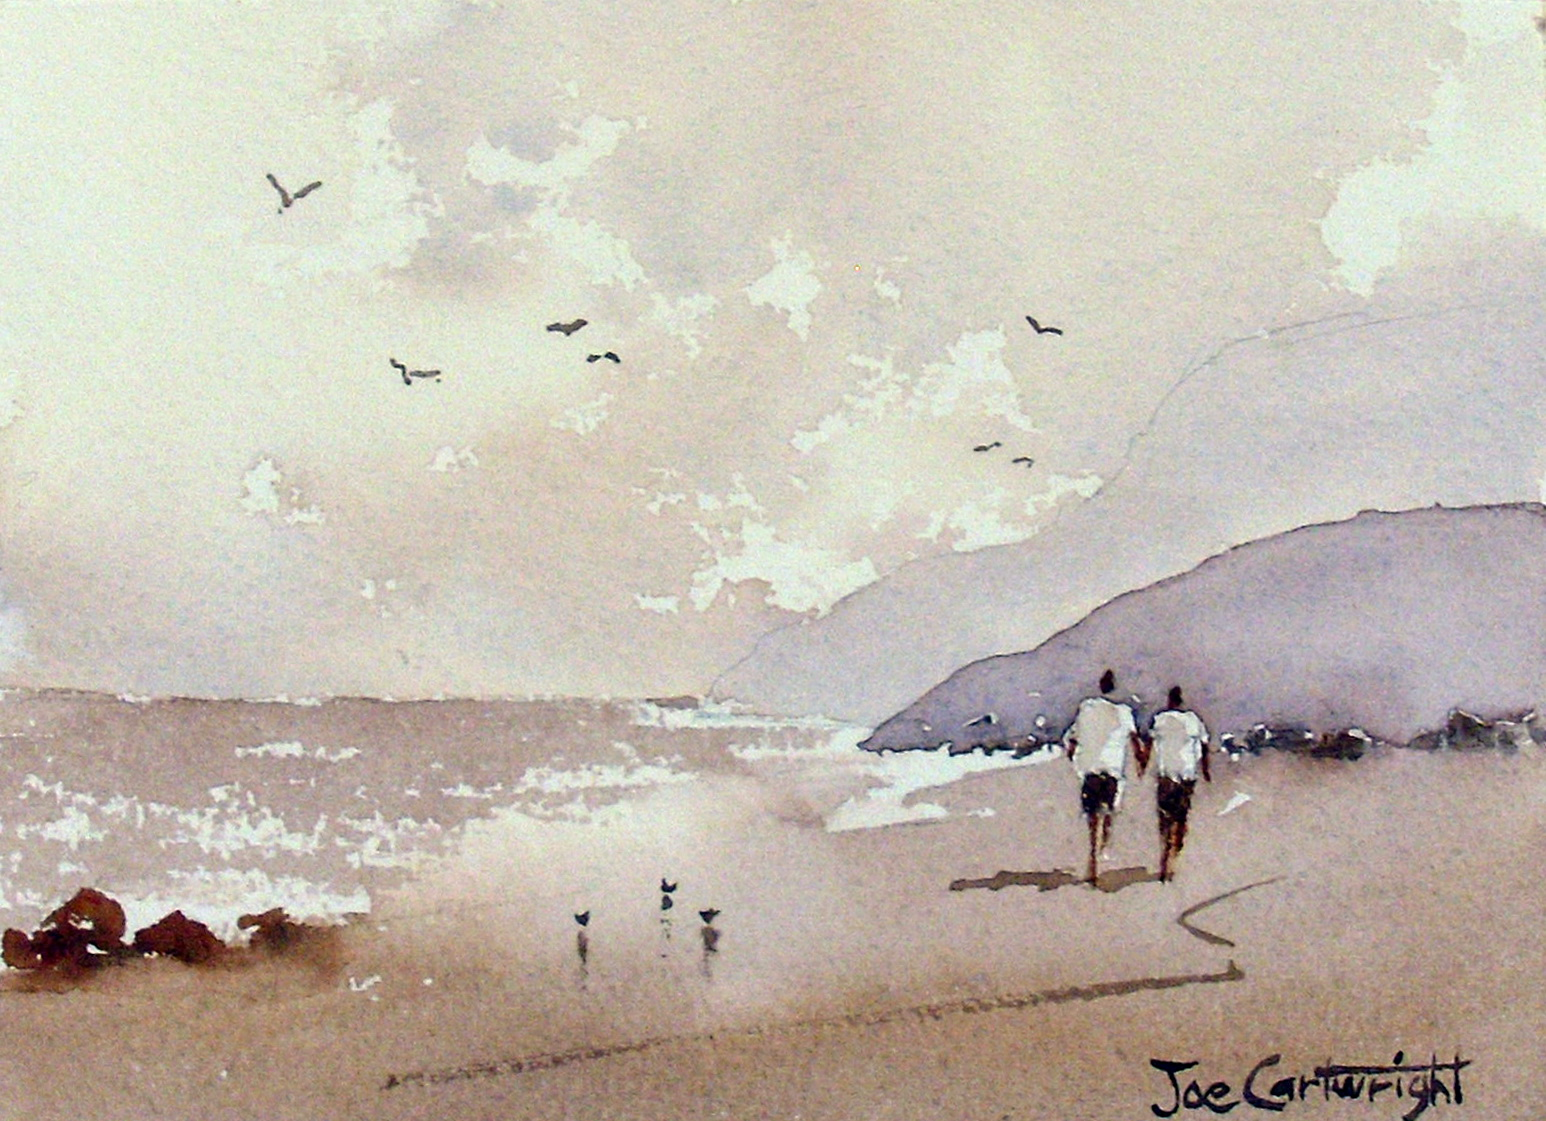 joe cartwright 39 s watercolor blog august 2011